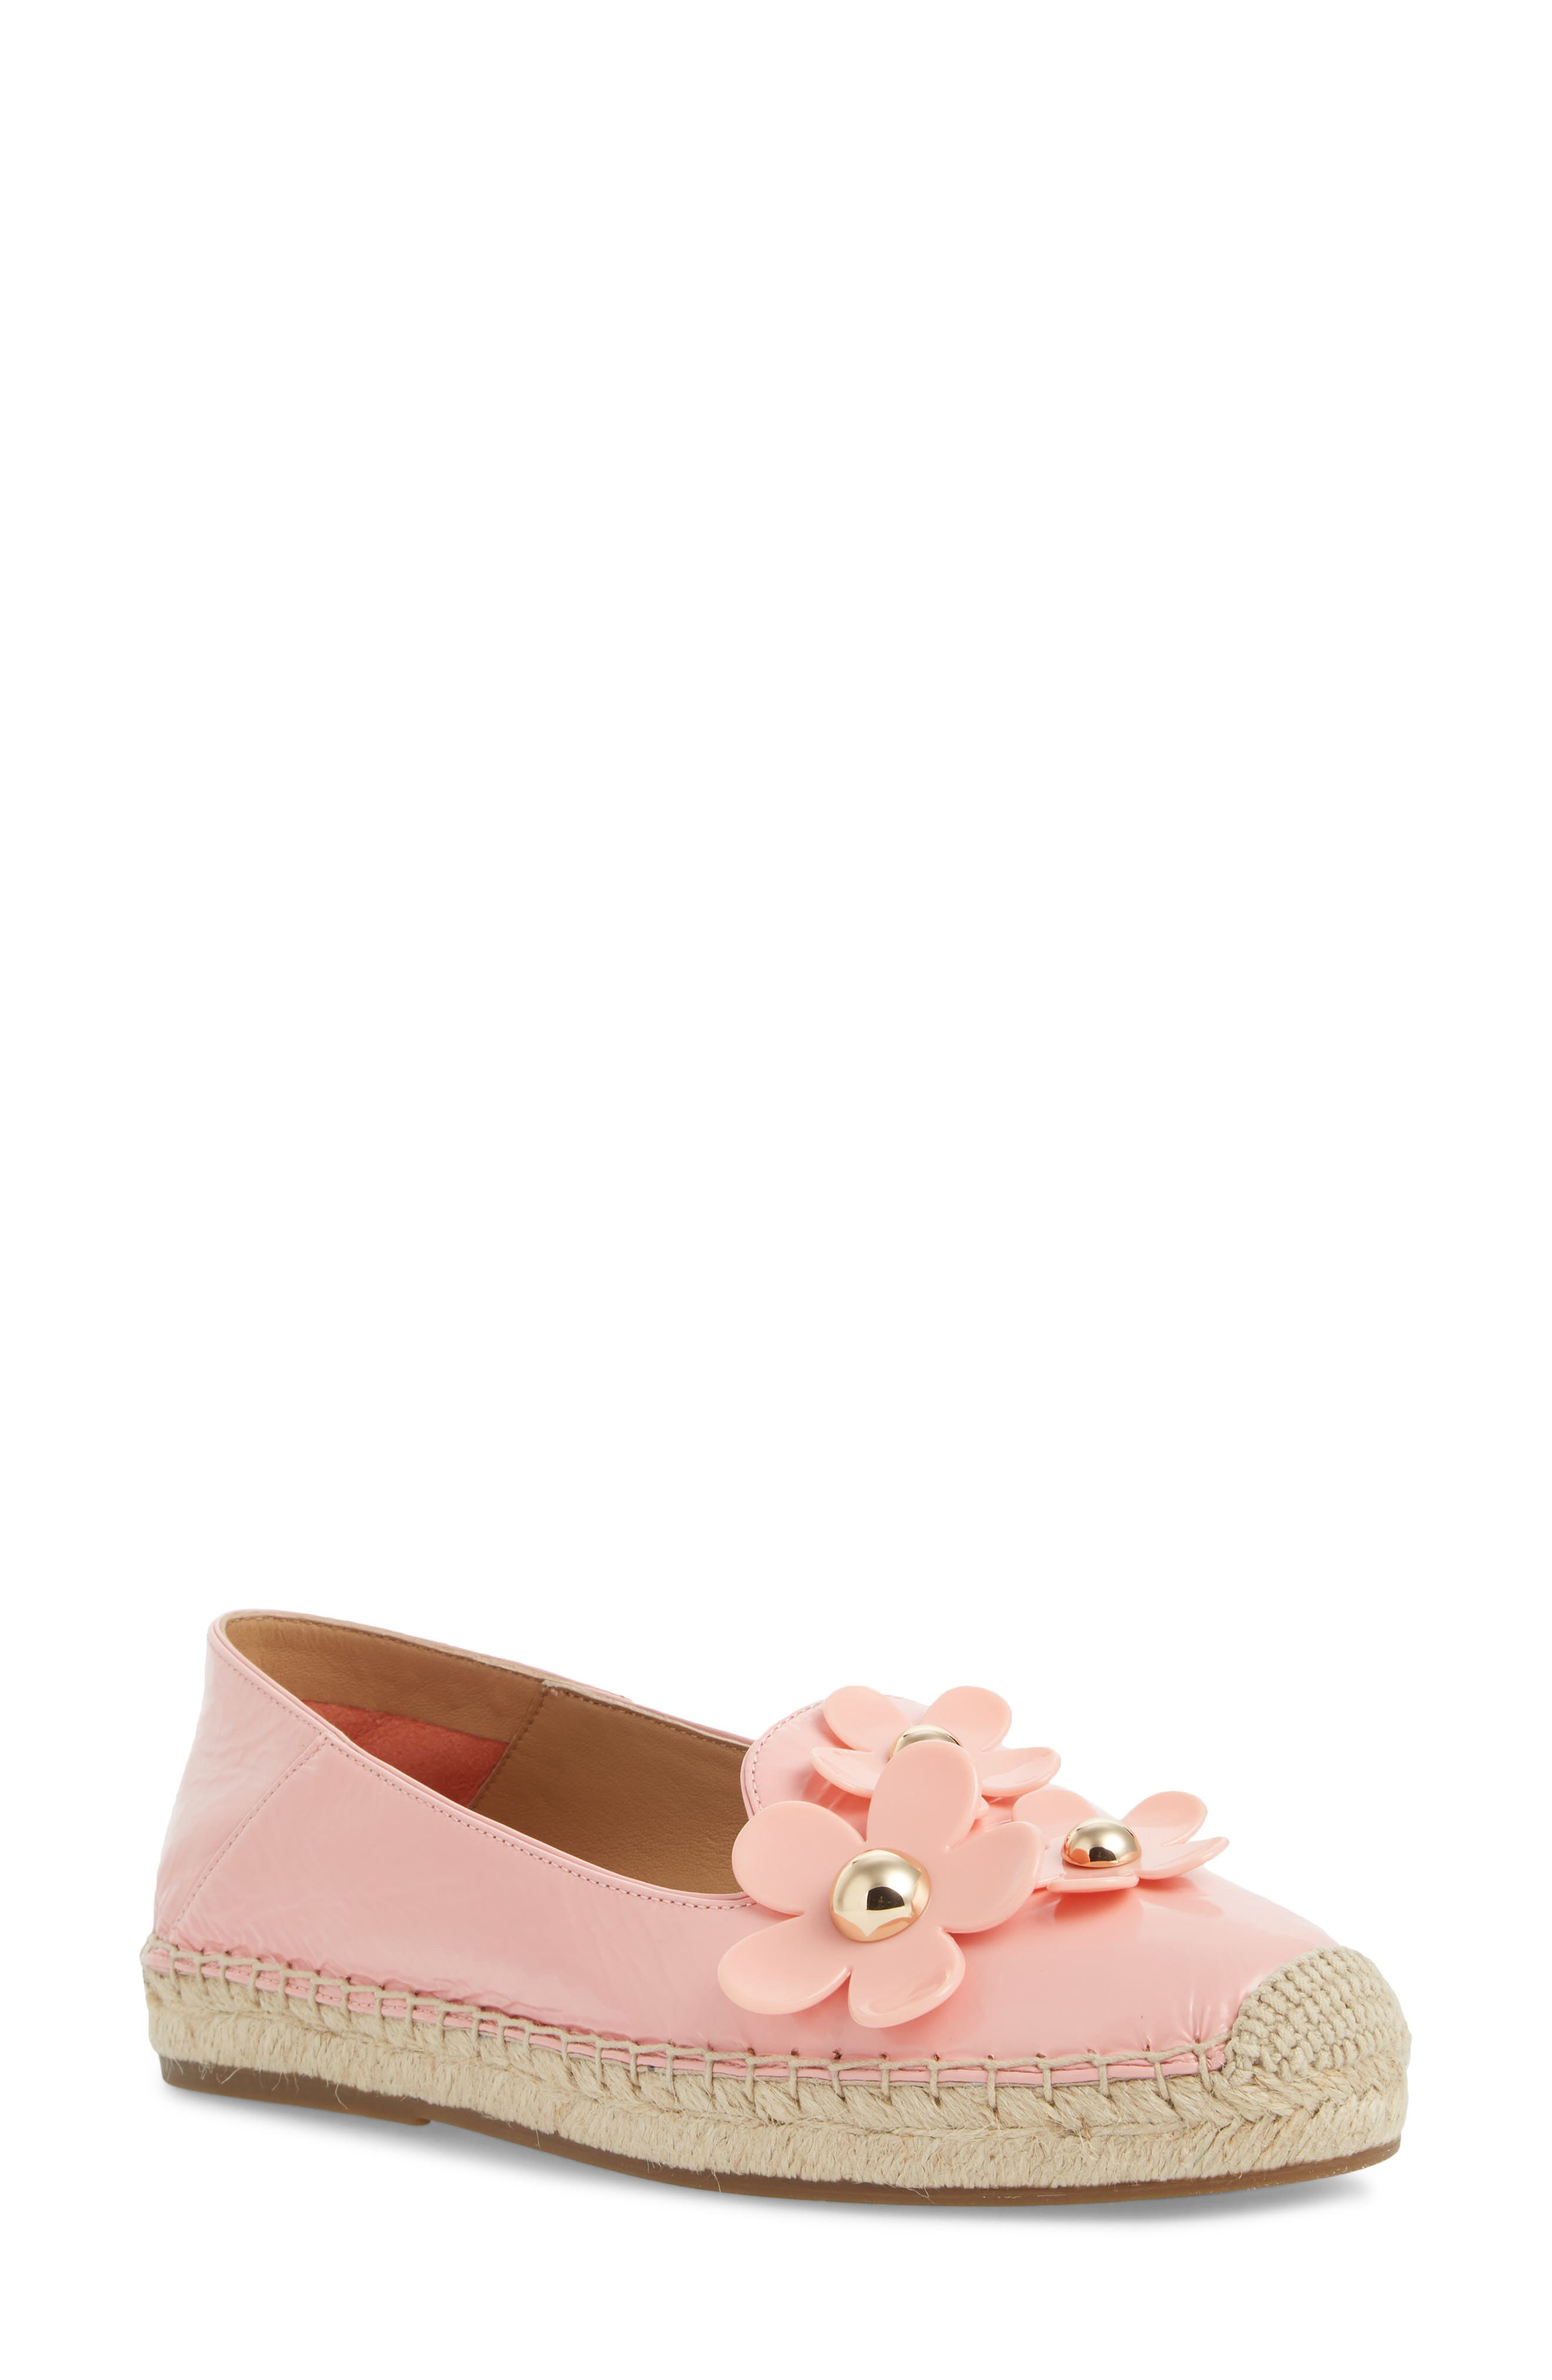 Daisy Studded Espadrille in Light Pink